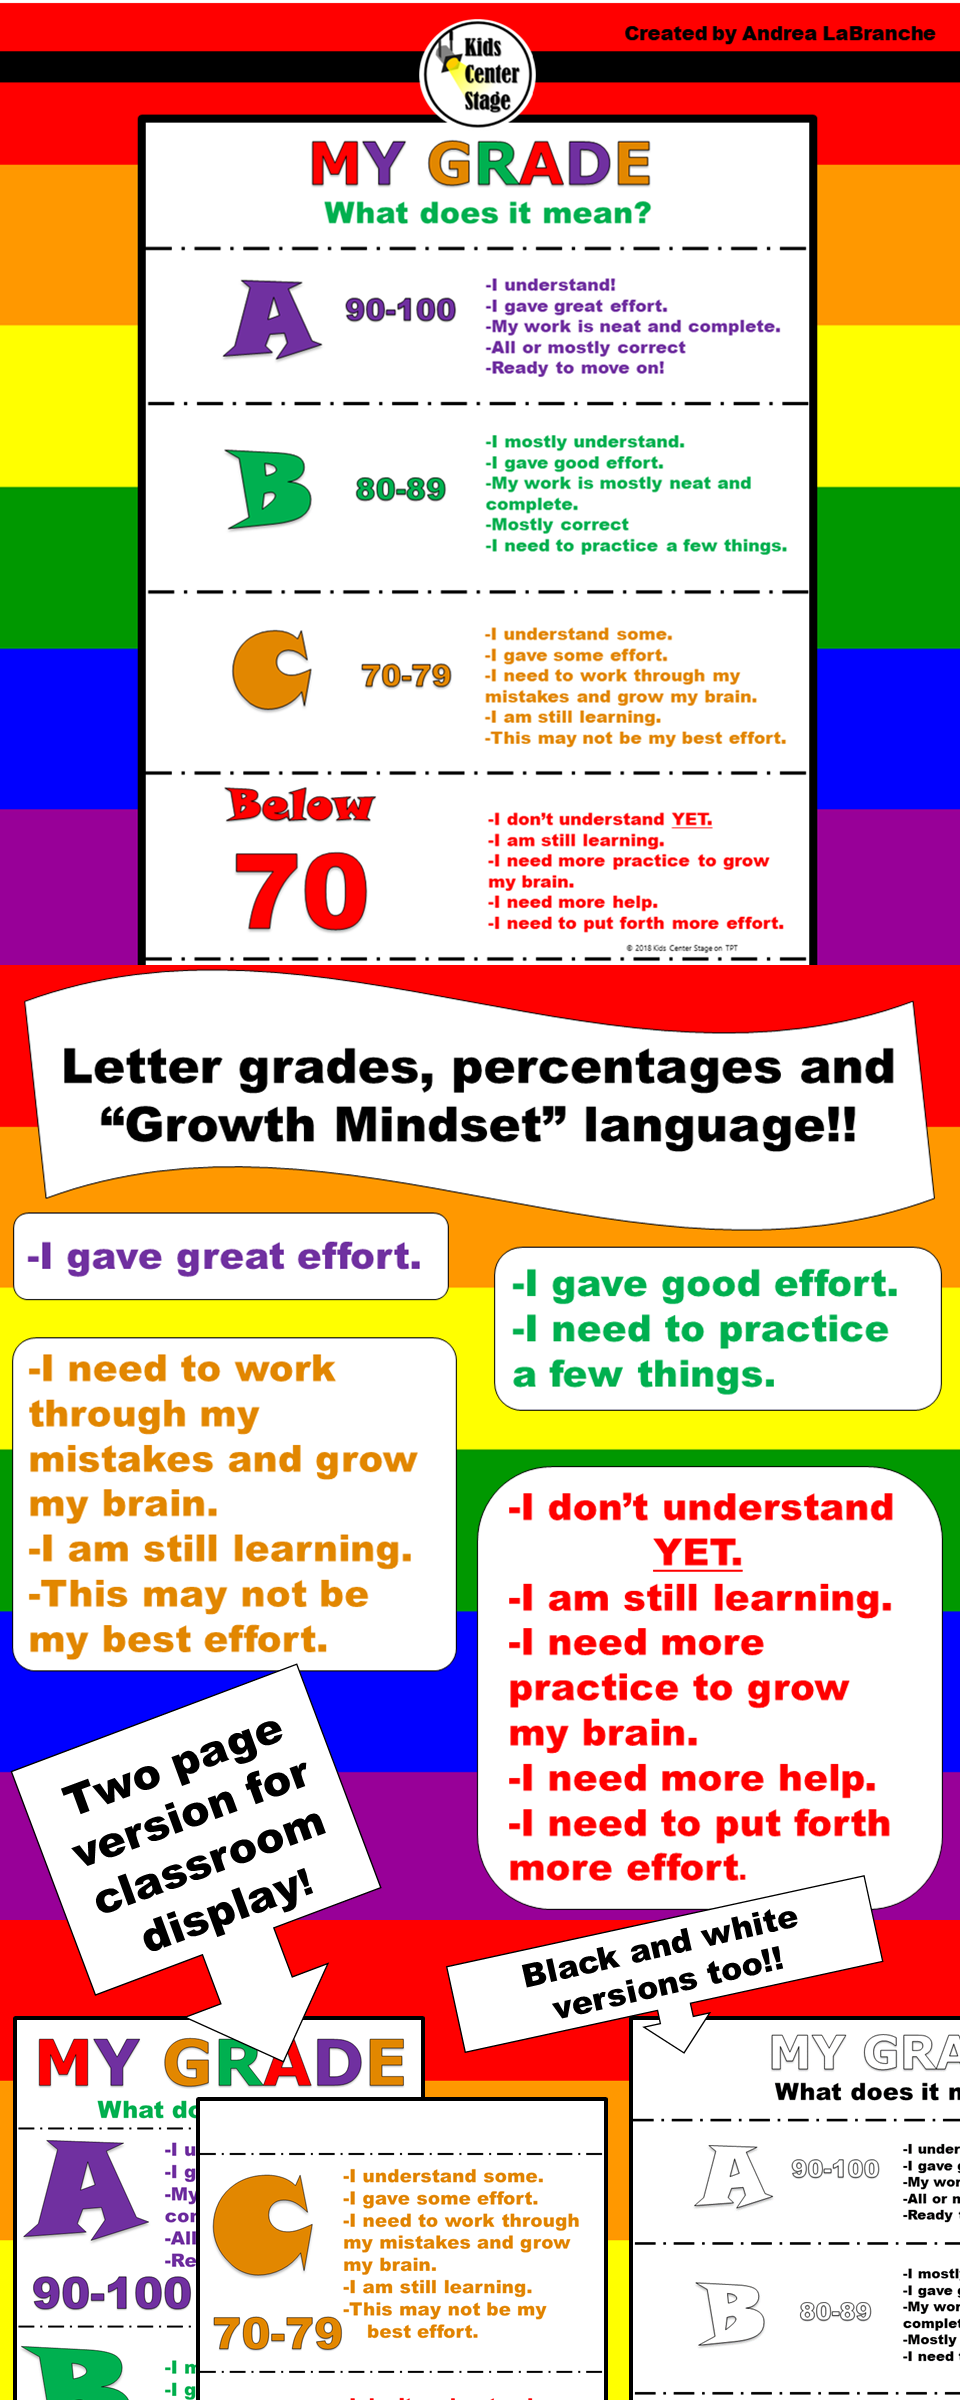 What does my grade mean? (Growth Mindset Language